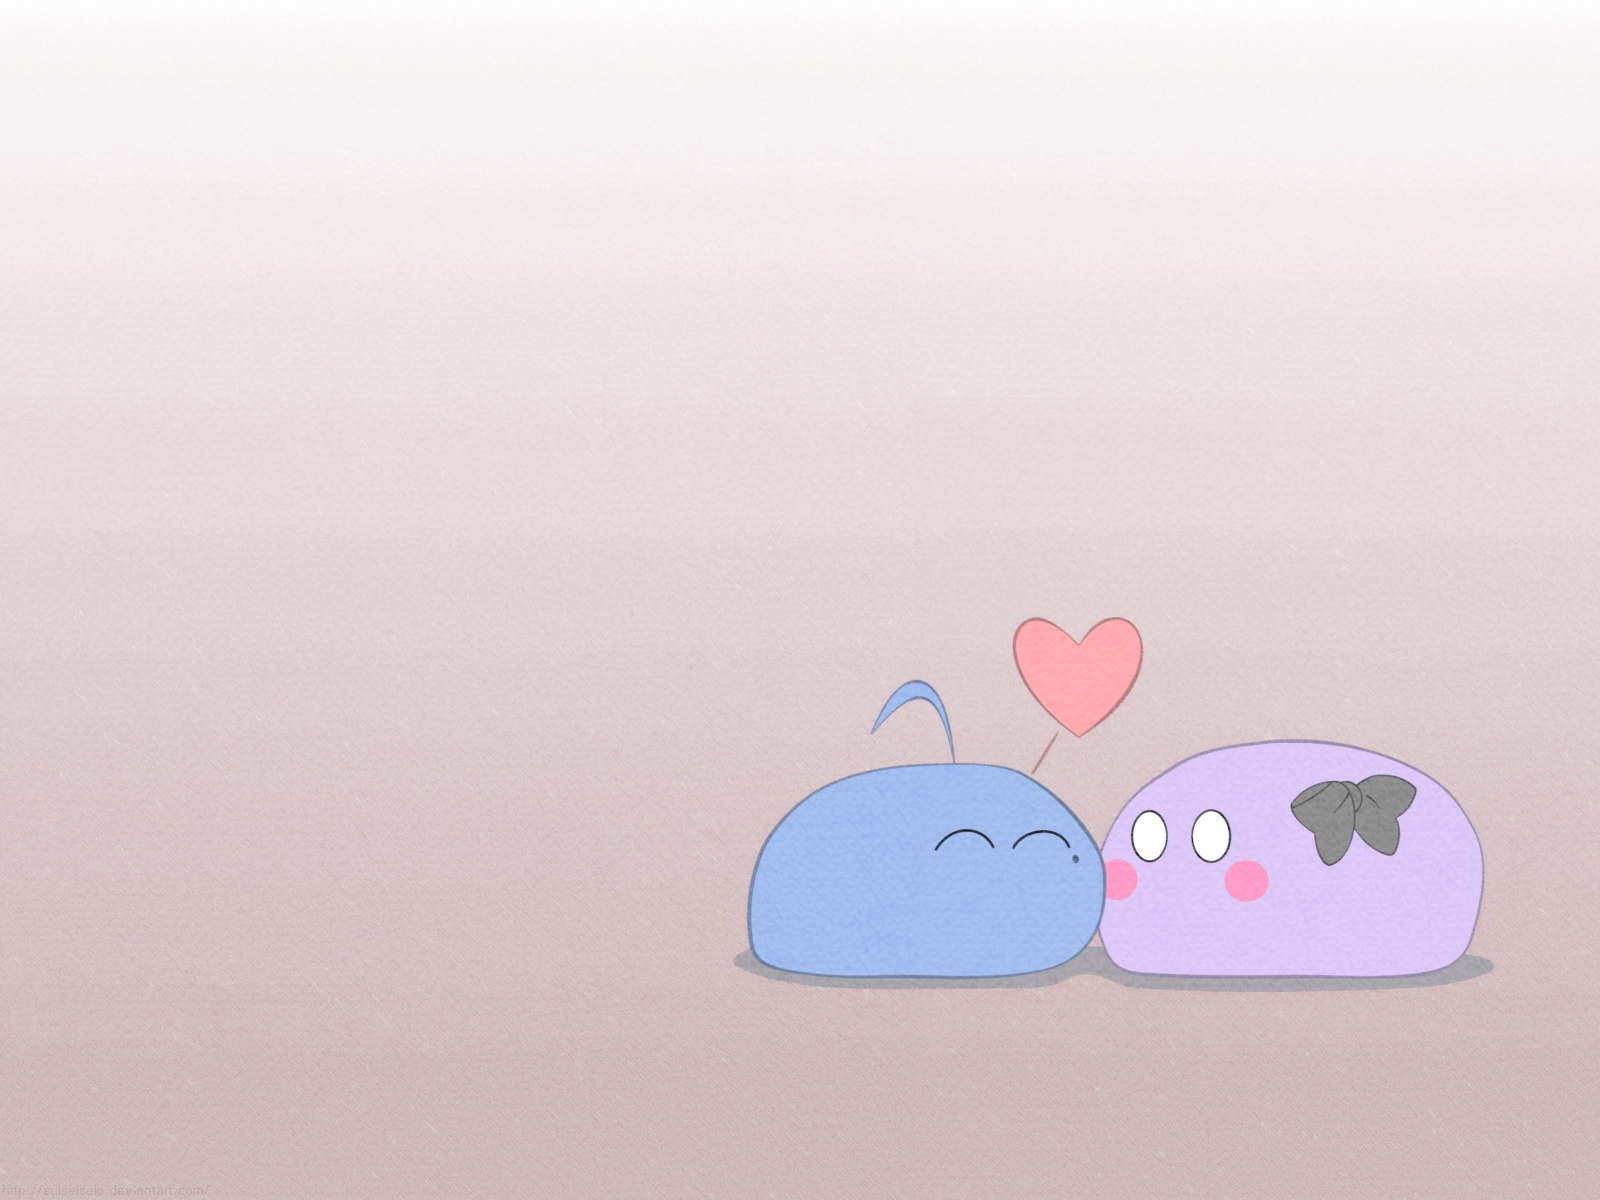 Cute Love Background   Wallpaper High Definition High Quality 1600x1200